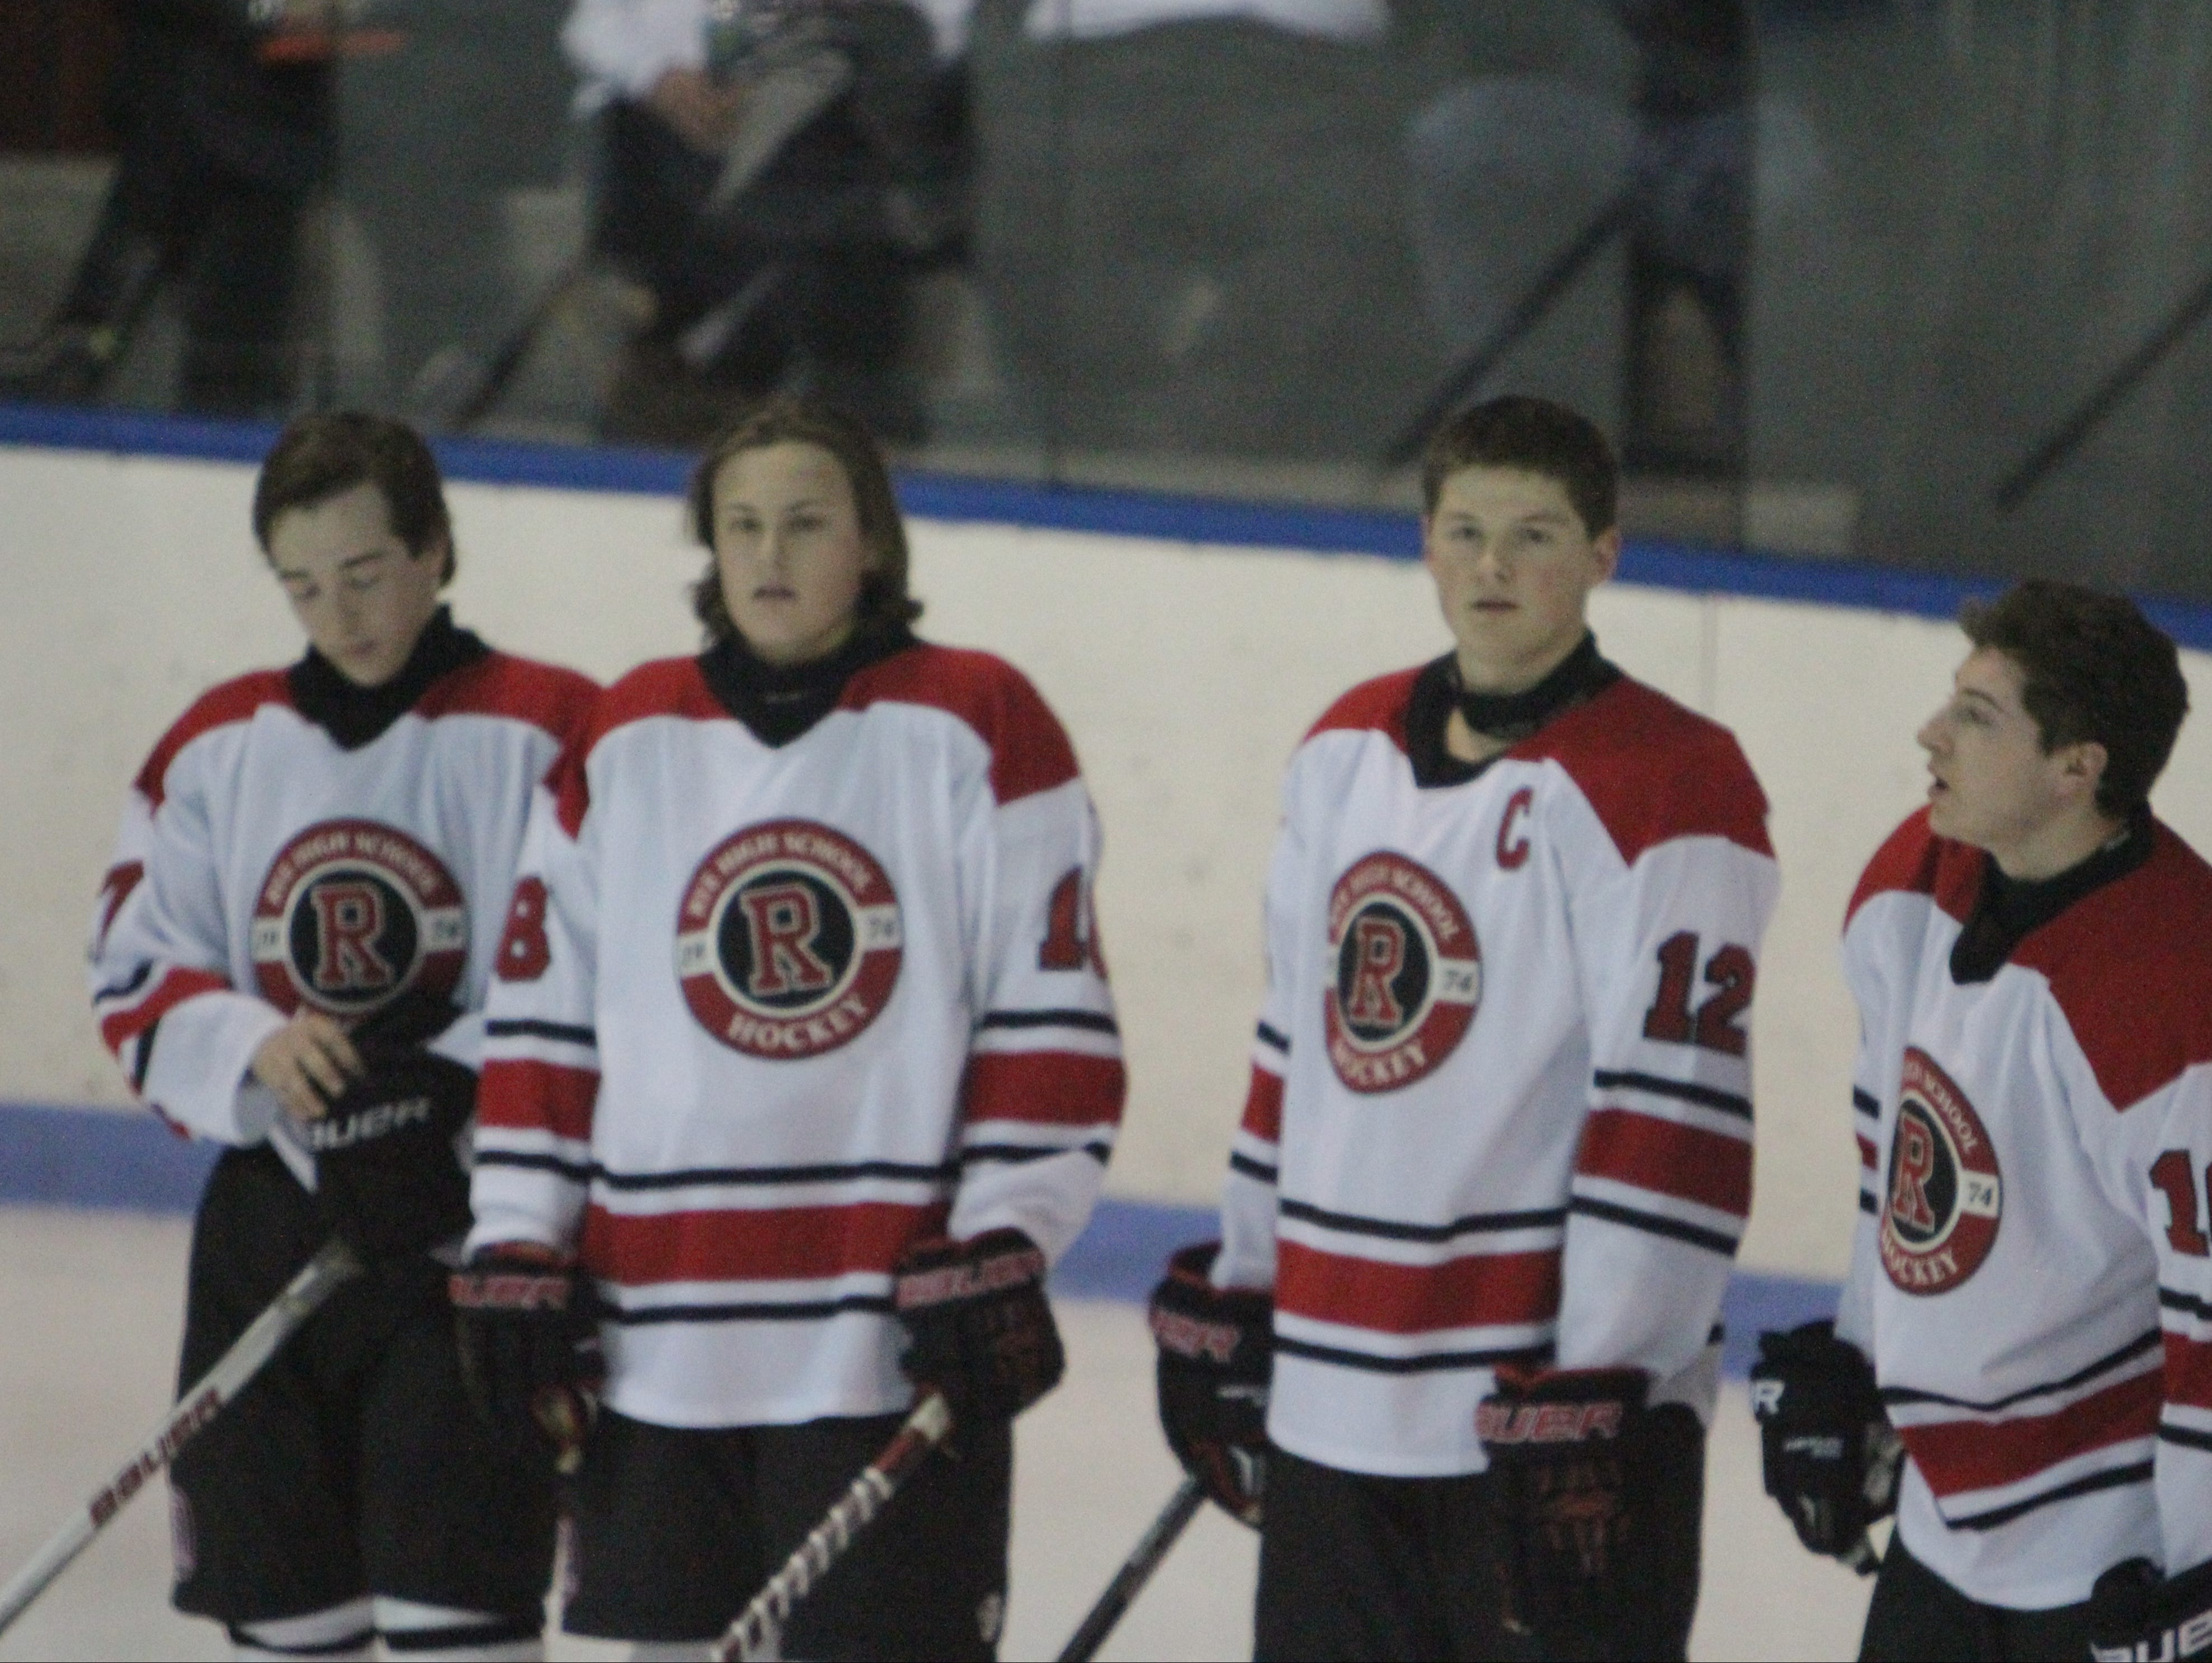 Suffern defeated Rye 3-2 in a Section 1 hockey game at the Playland Ice Casino in Rye on Wednesday, January 8th, 2016.